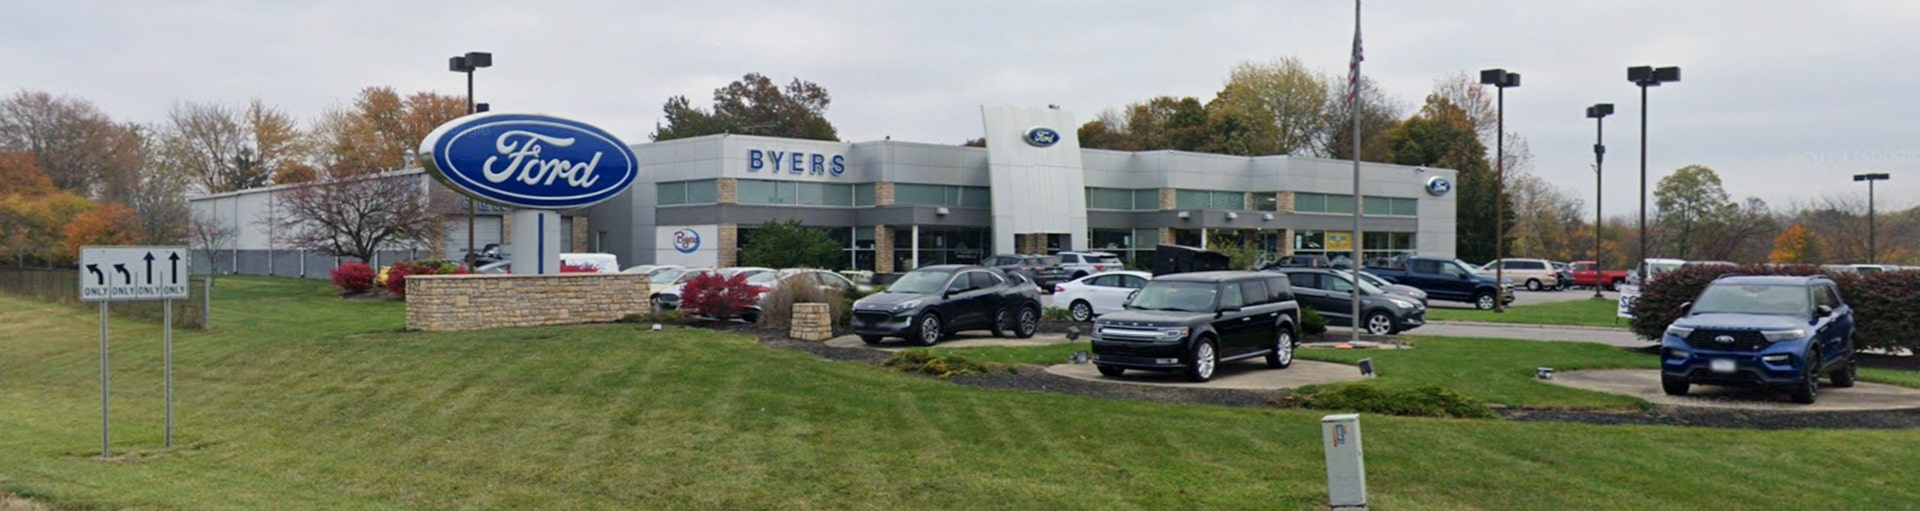 Byers Ford Service Specials